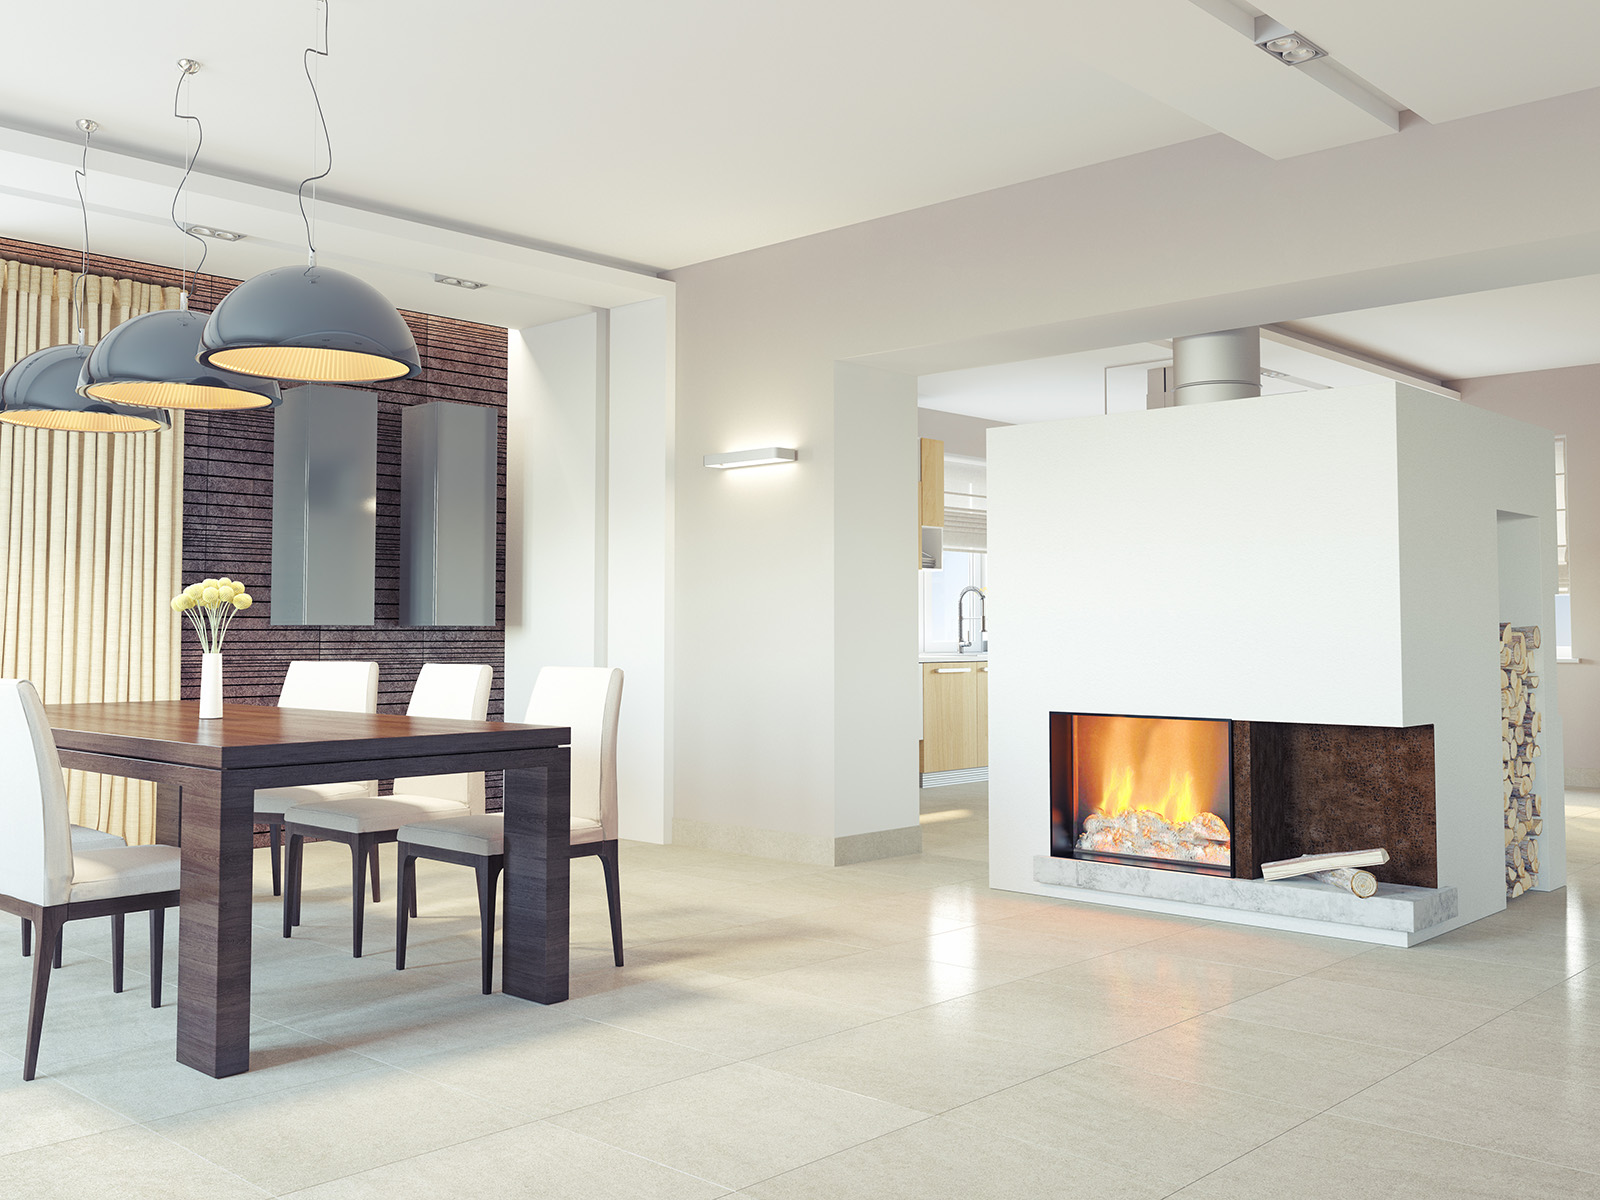 Tables and chairs in the room with fireplace 51205